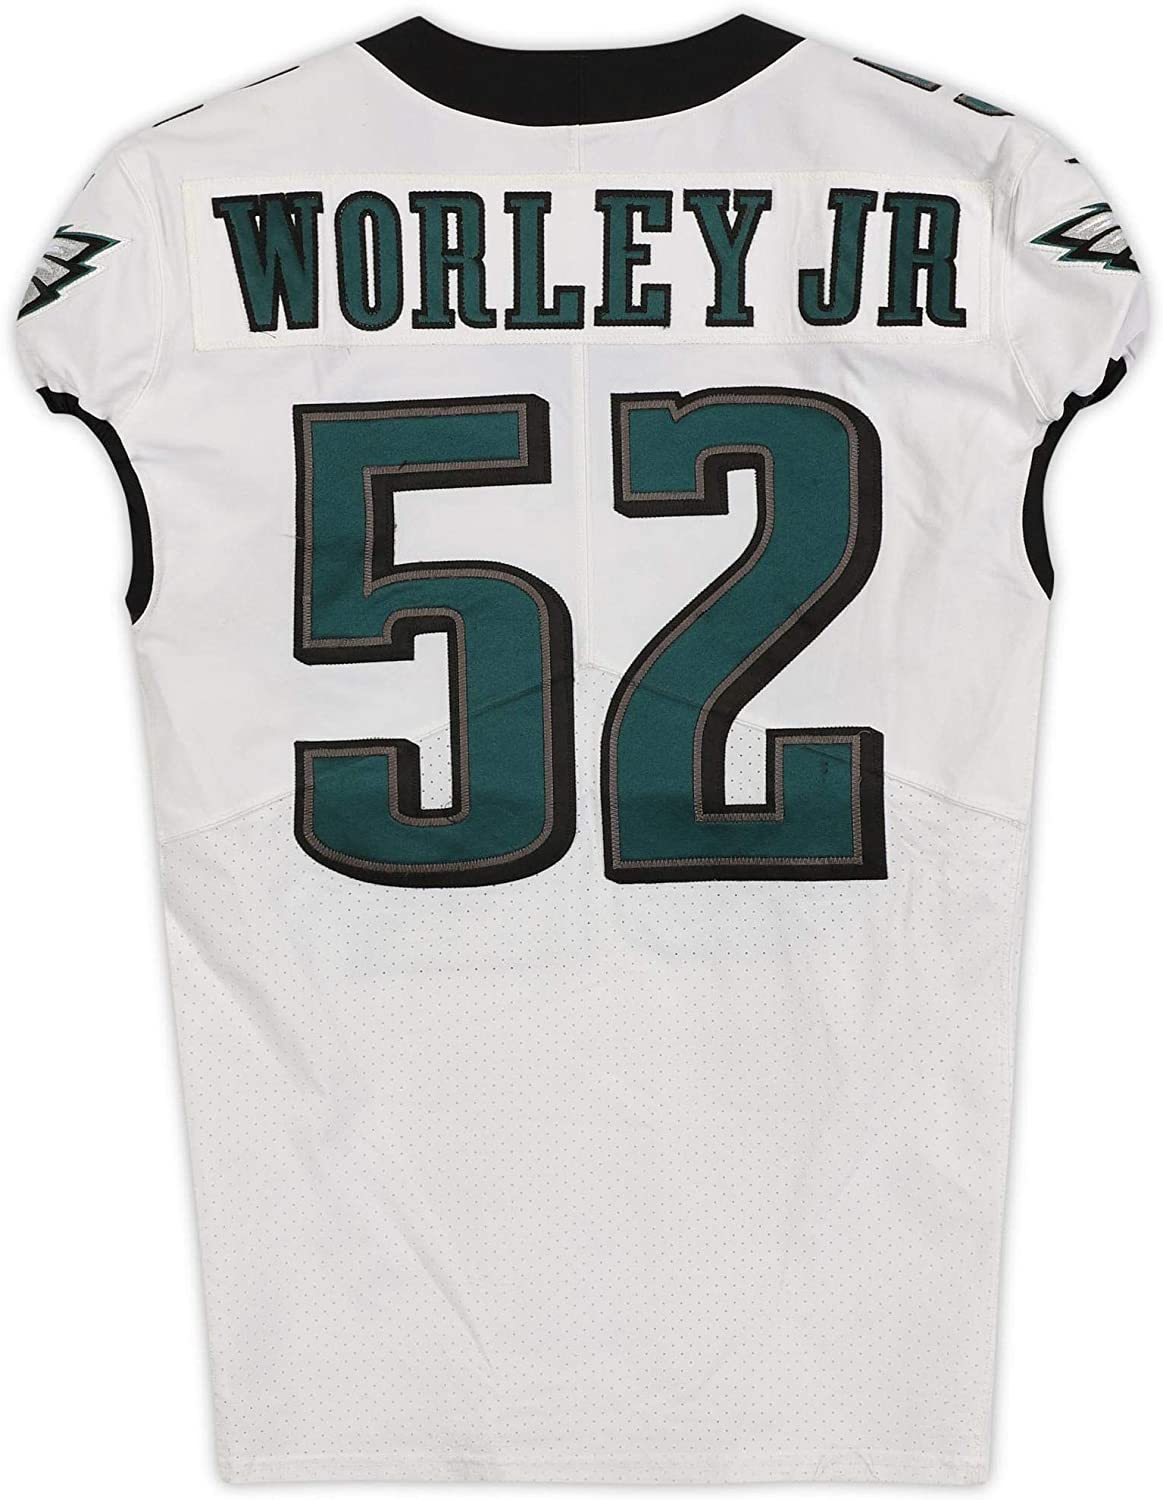 Chris Worley Jr. Philadelphia Eagles Game-Used #52 White Jersey from the 2019-20 NFL Preseason - Size 42+4 - Fanatics Authentic Certified